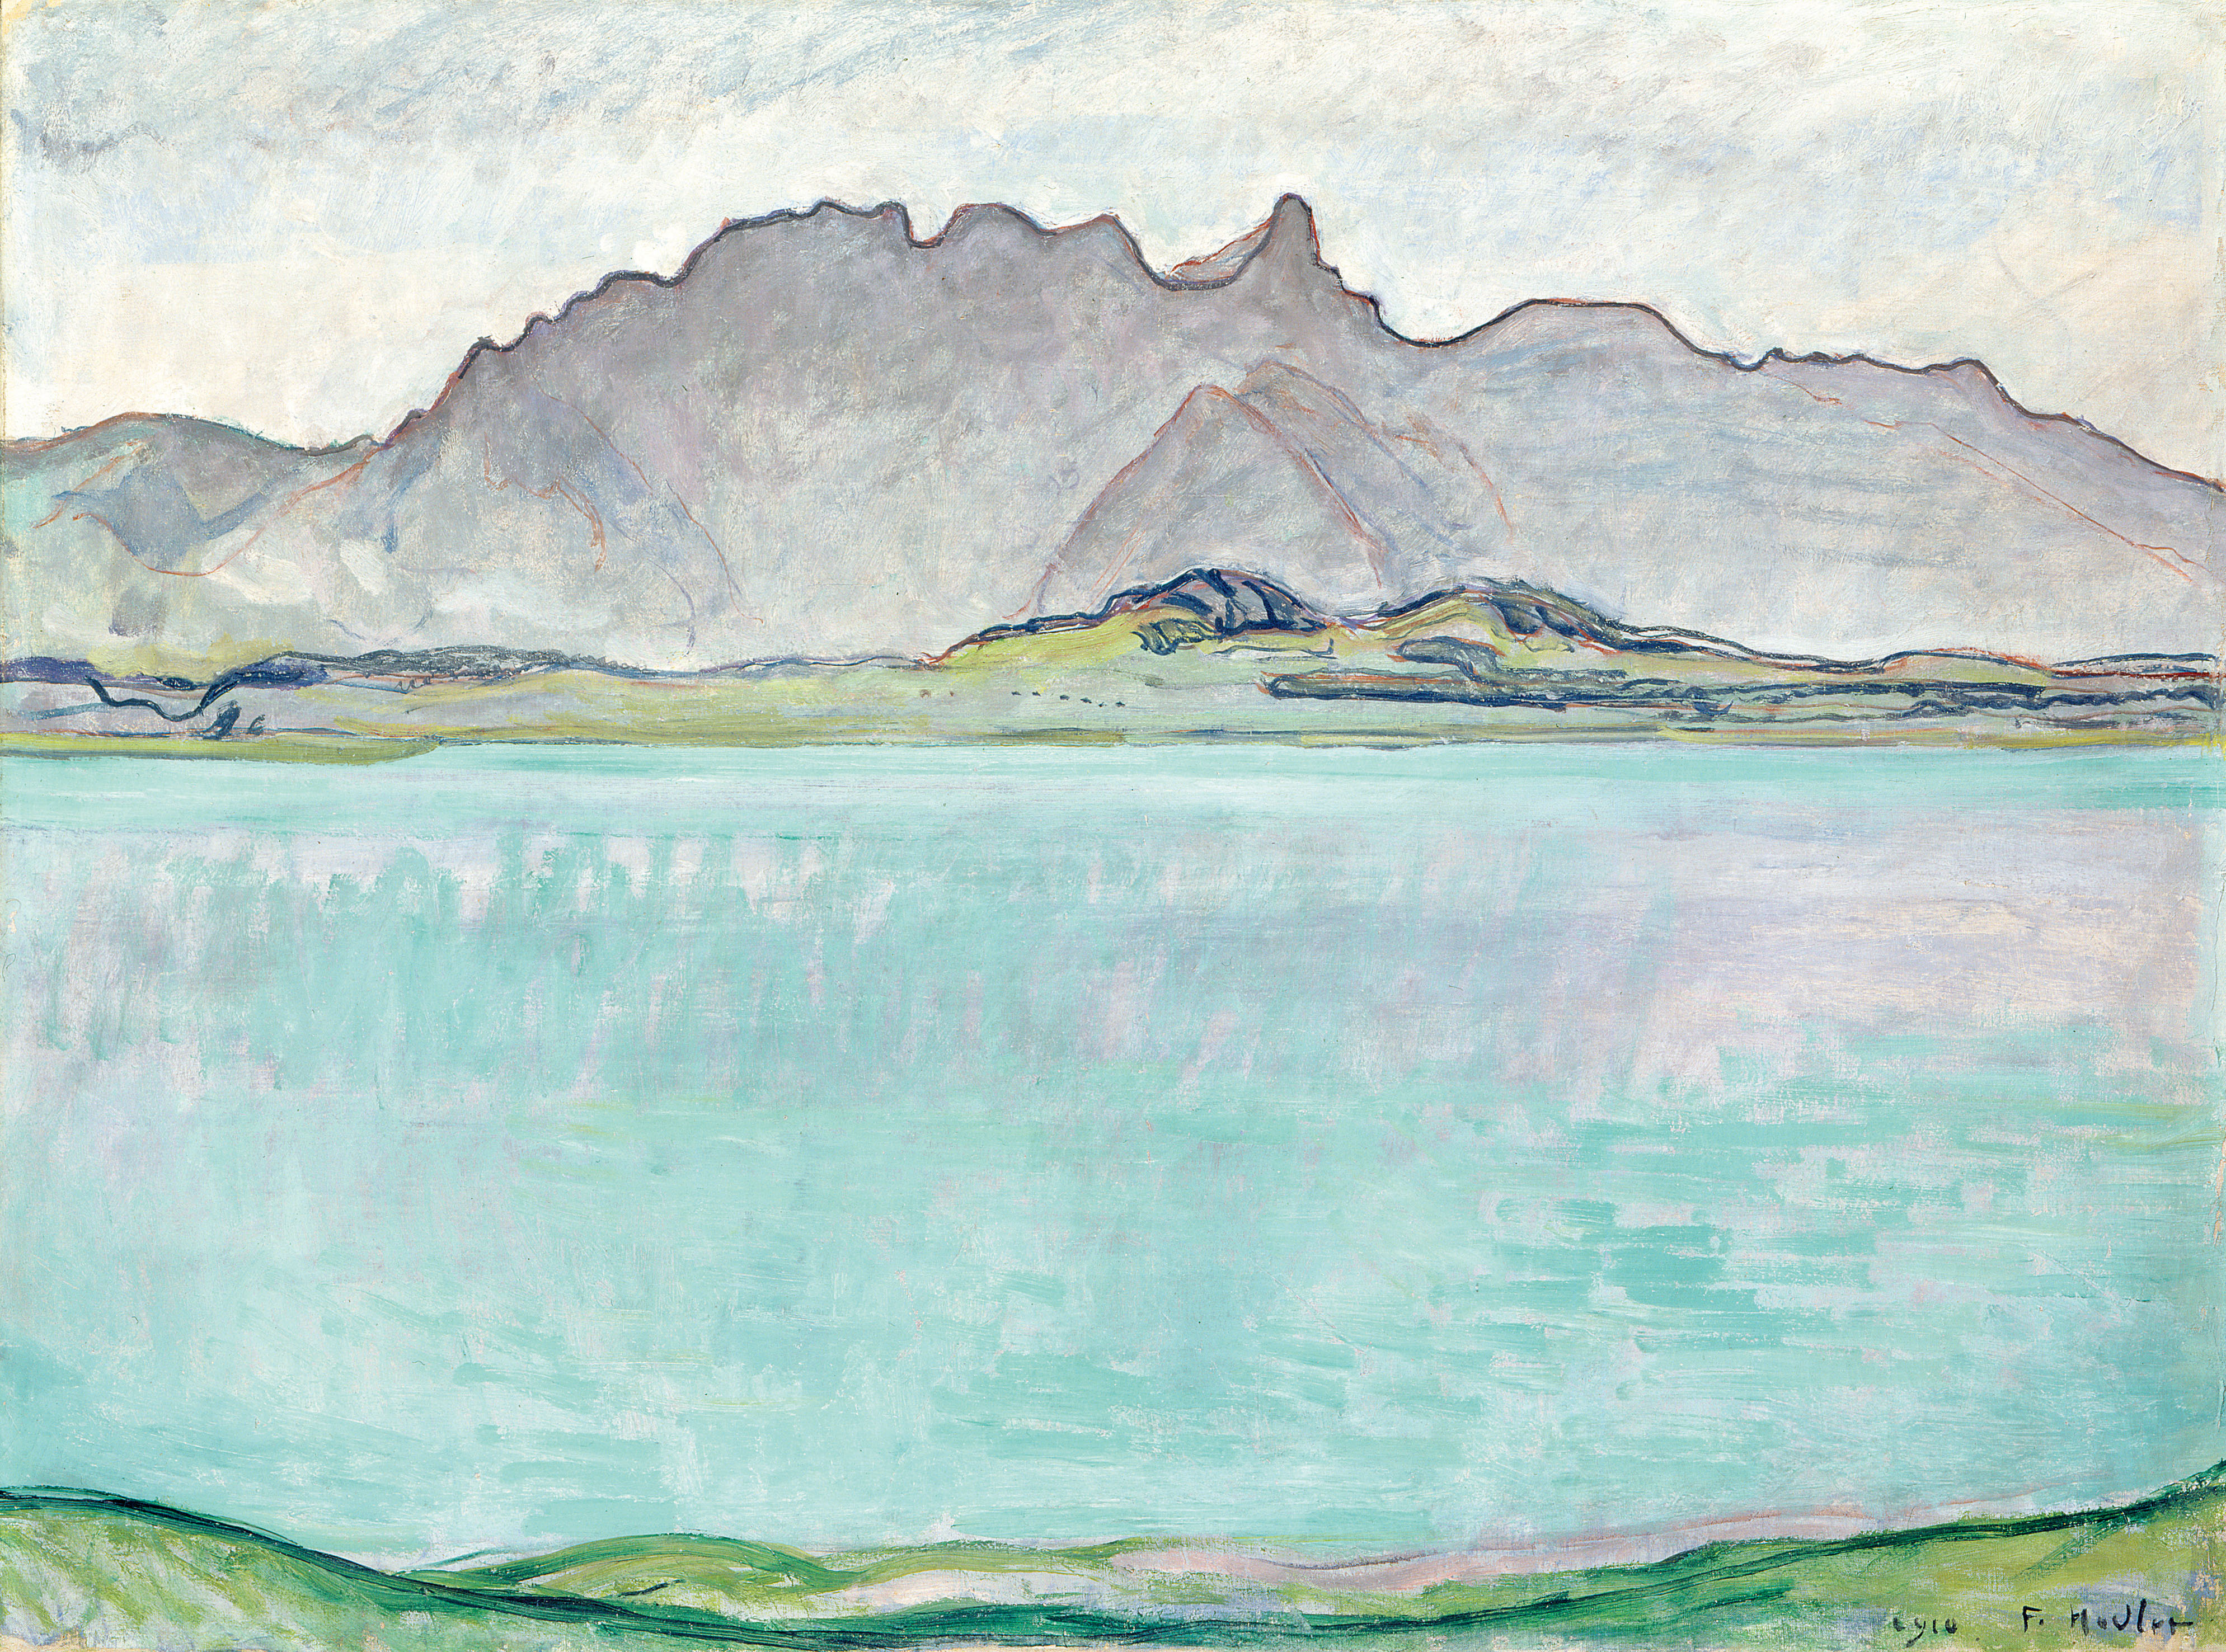 Ferdinand Hodler, Lake Thun with Stockhorn, 1910, private collection. Photo: © SIK-ISEA, Zurich